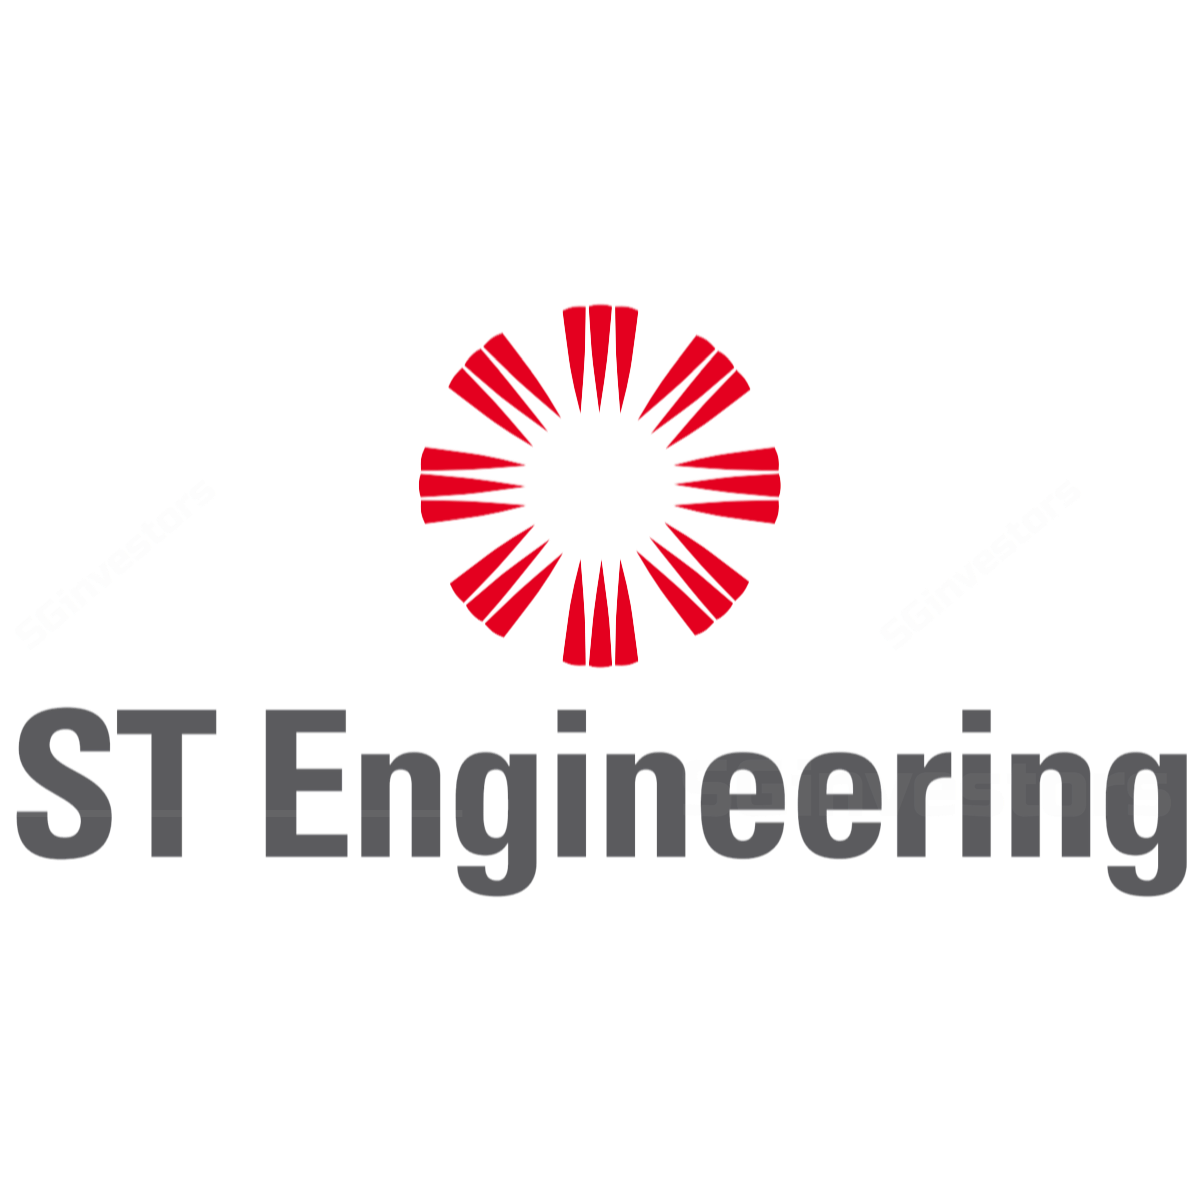 ST Engineering - CIMB Research 2017-11-09: Tech-savvy